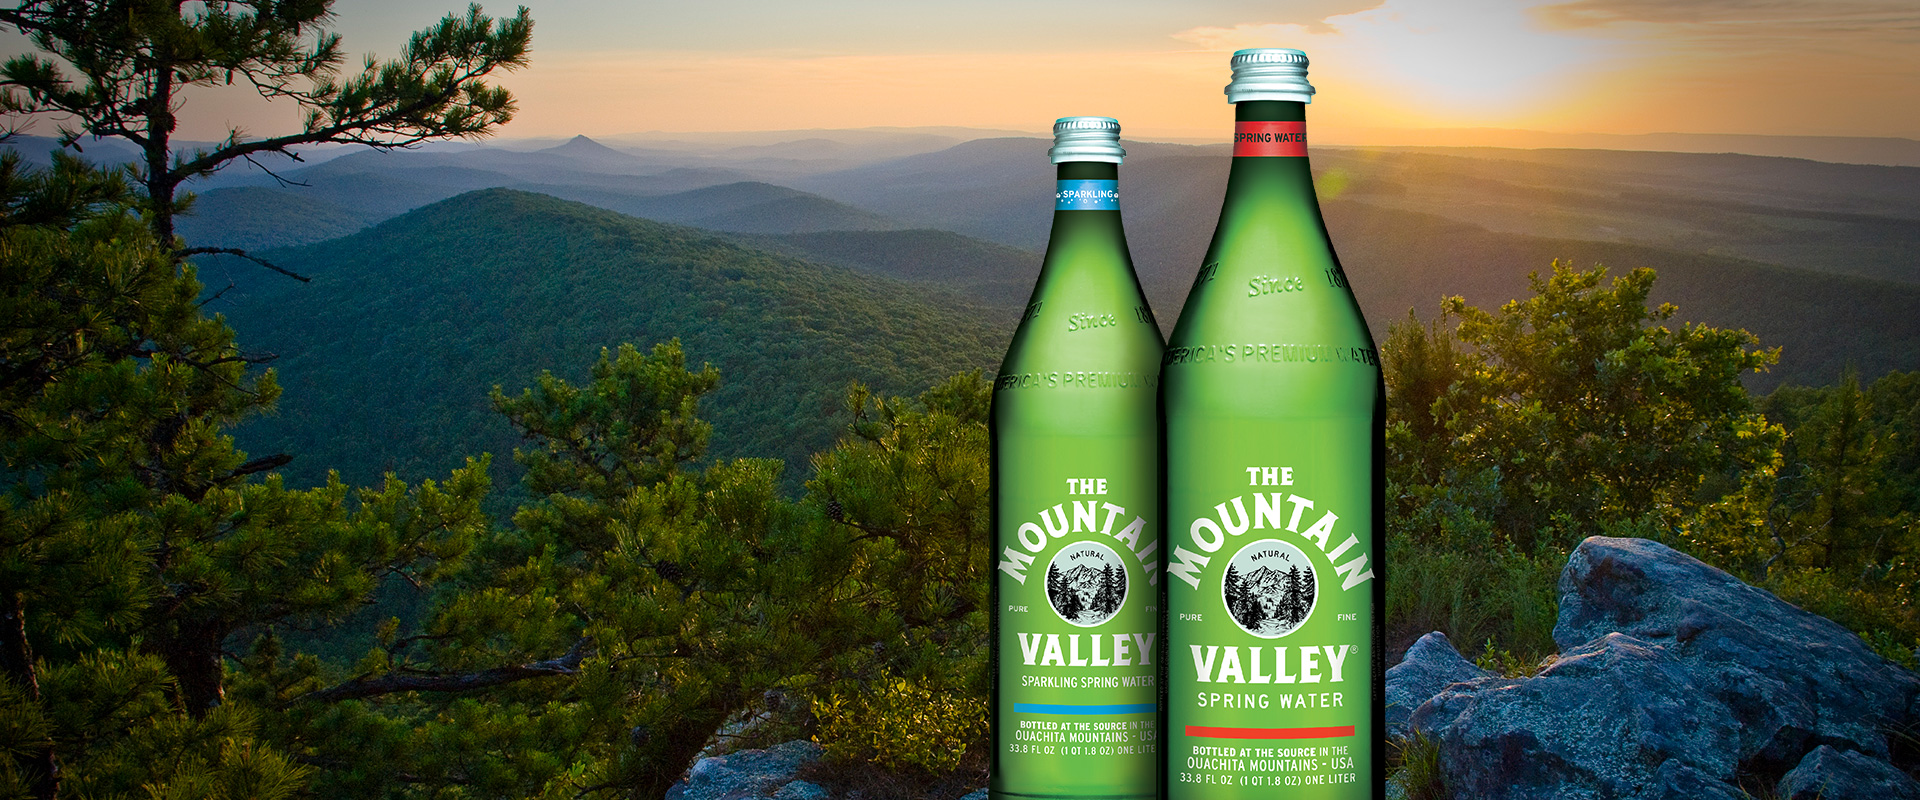 Mountain Valley Spring Water Partnerships with the Murphy Arts District